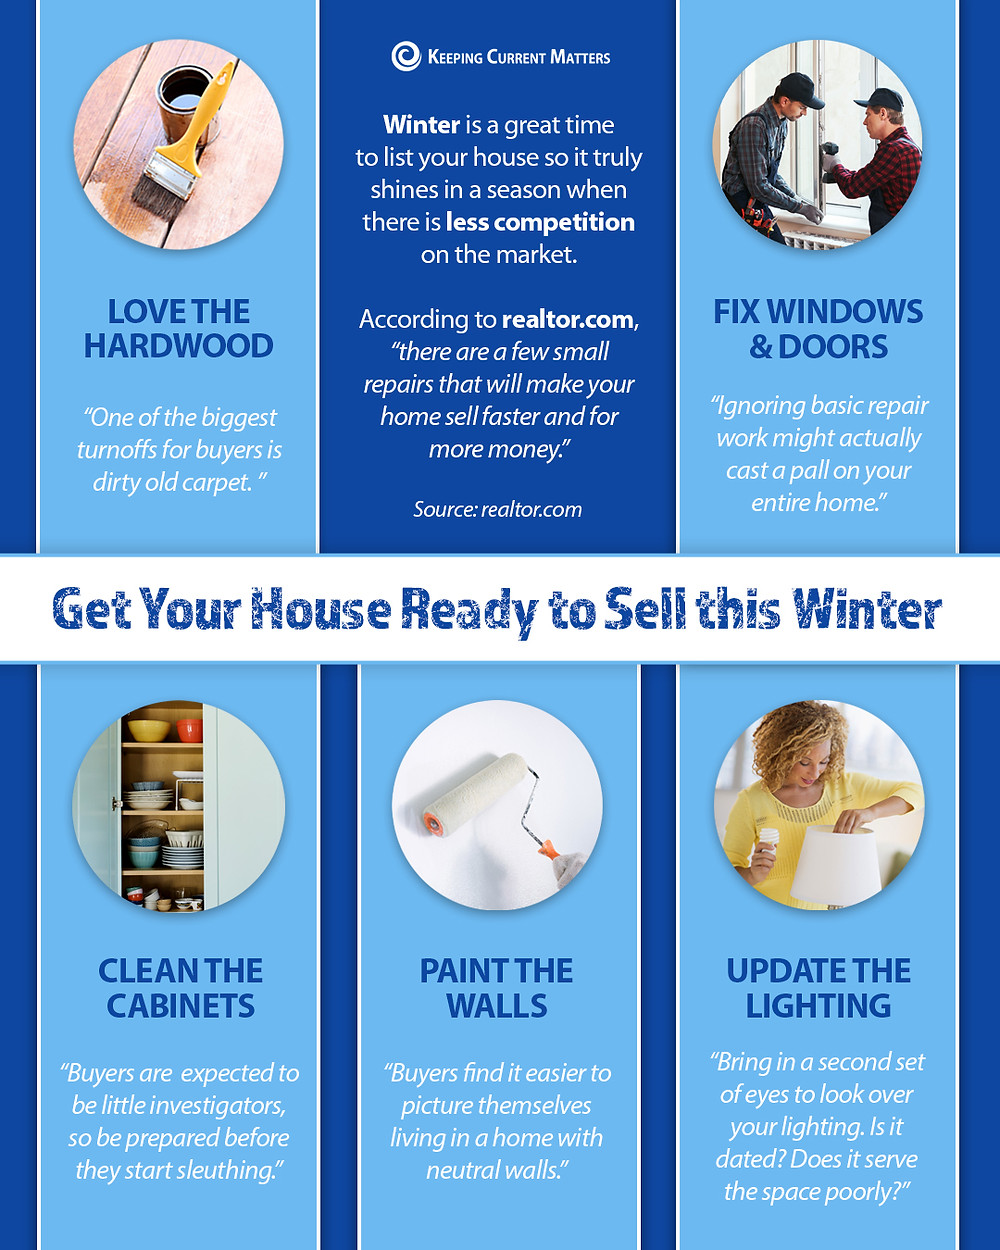 Get Your House Ready To Sell This Winter | Keeping Current Matters